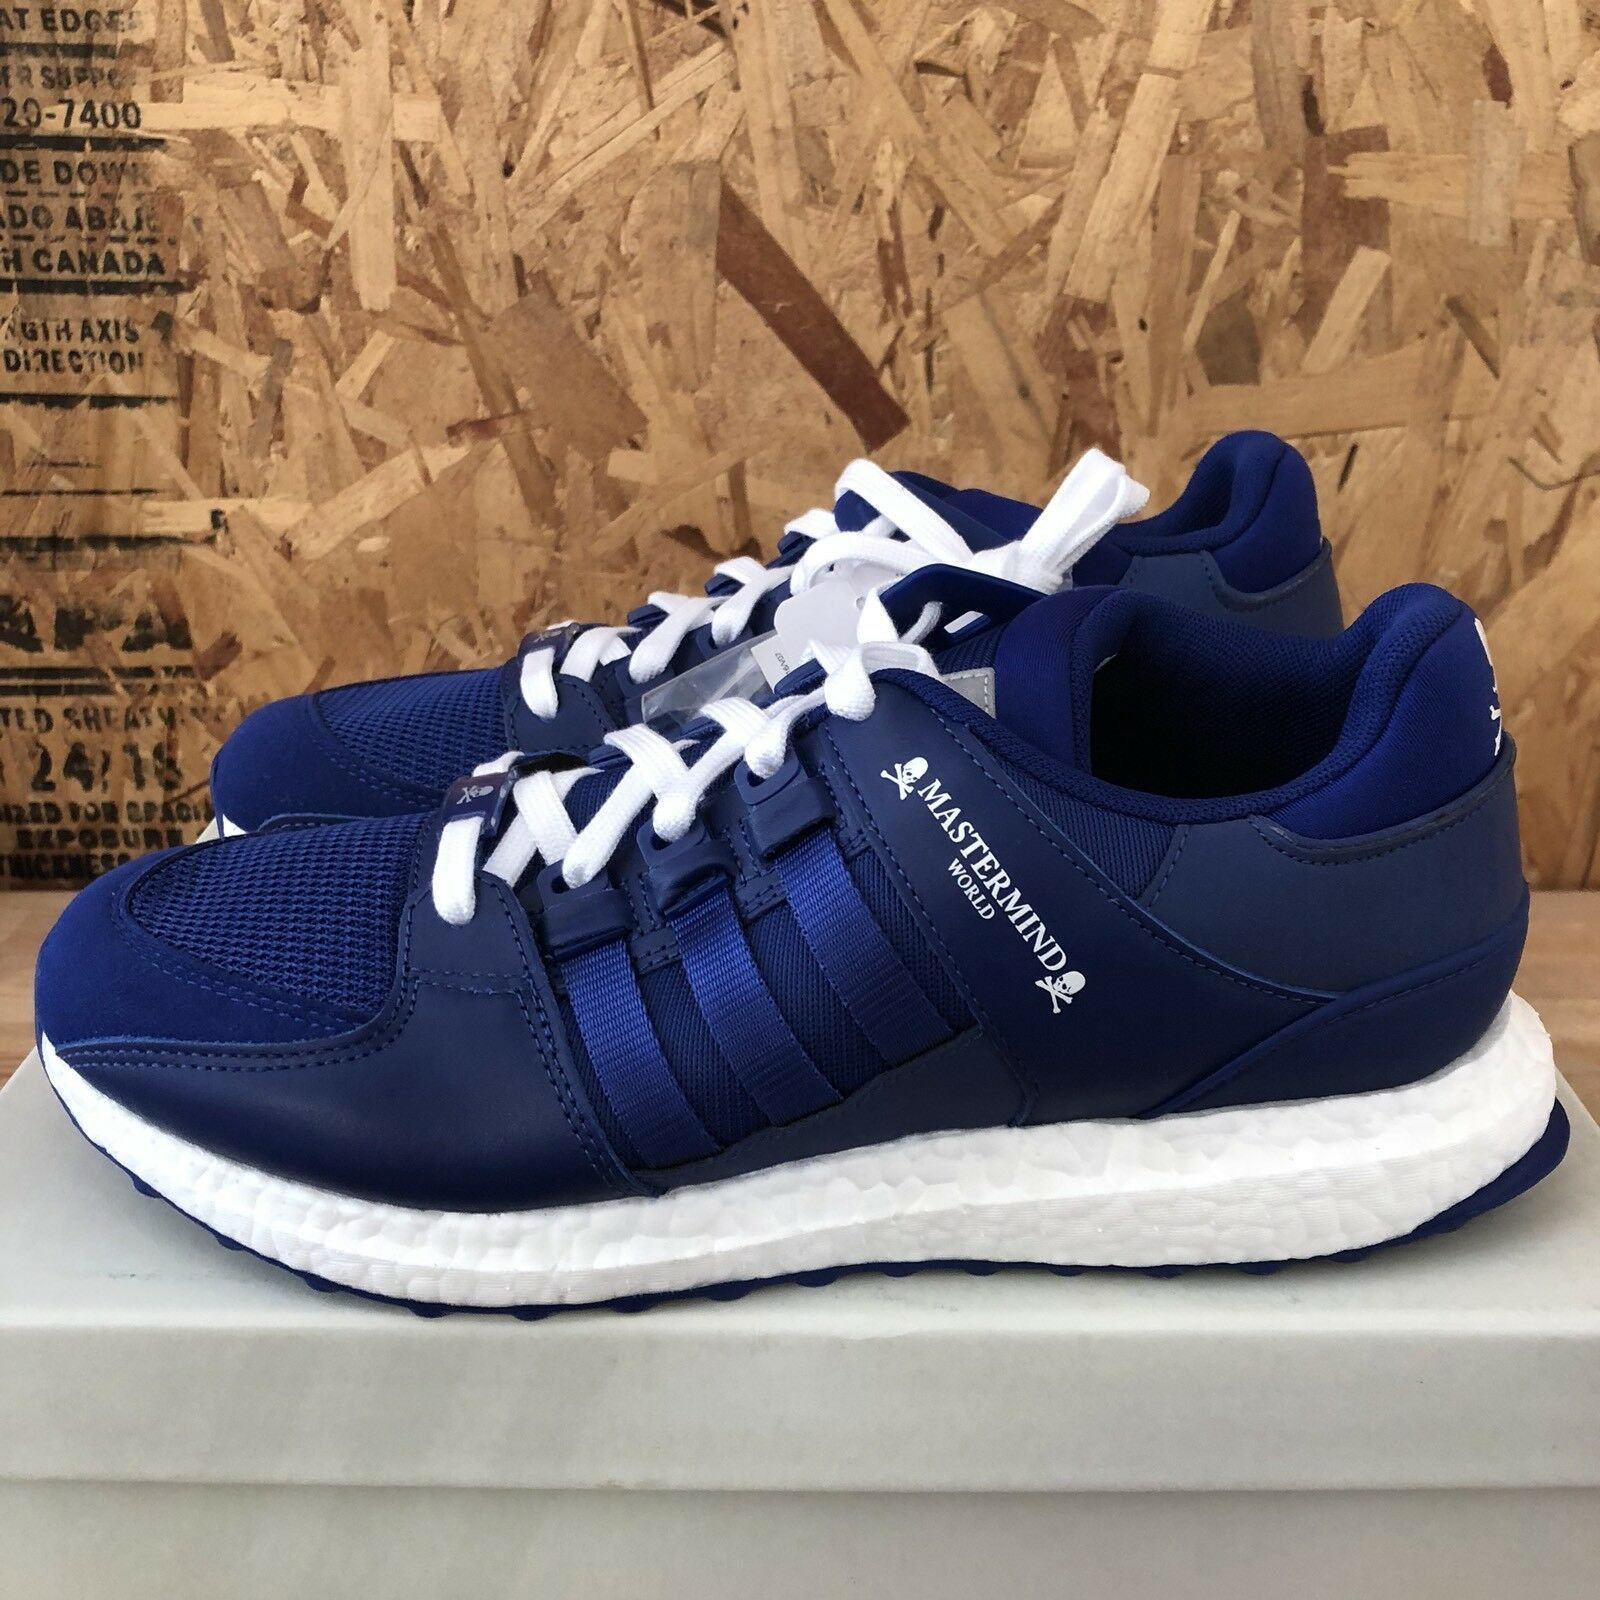 Adidas Mastermind EQT Support Ultra MMW CQ1827 - bluee Size 8.5 New